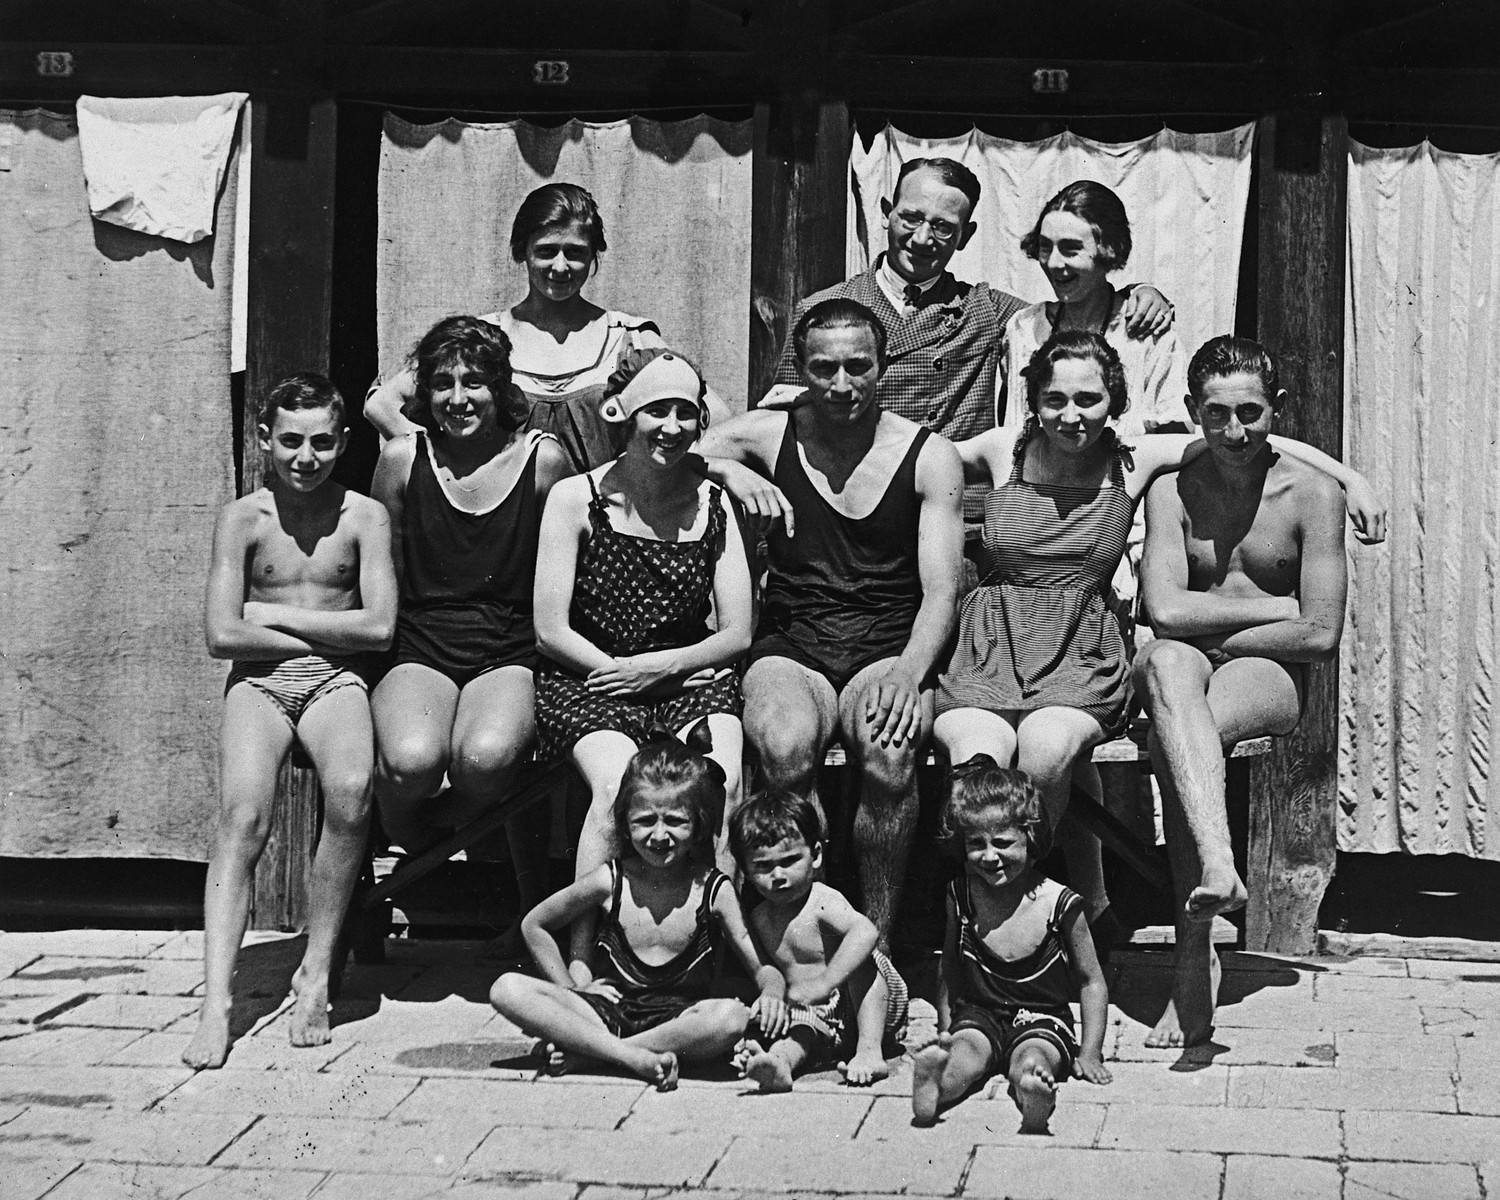 An extended Austrian-Jewish family poses for a family portrait in their bathing suits.  Pictured are the Porges family.  Paul Peter is the youngest child in the front center.  His mother, Jenny Porges, is pictured in the second row, third from the left.